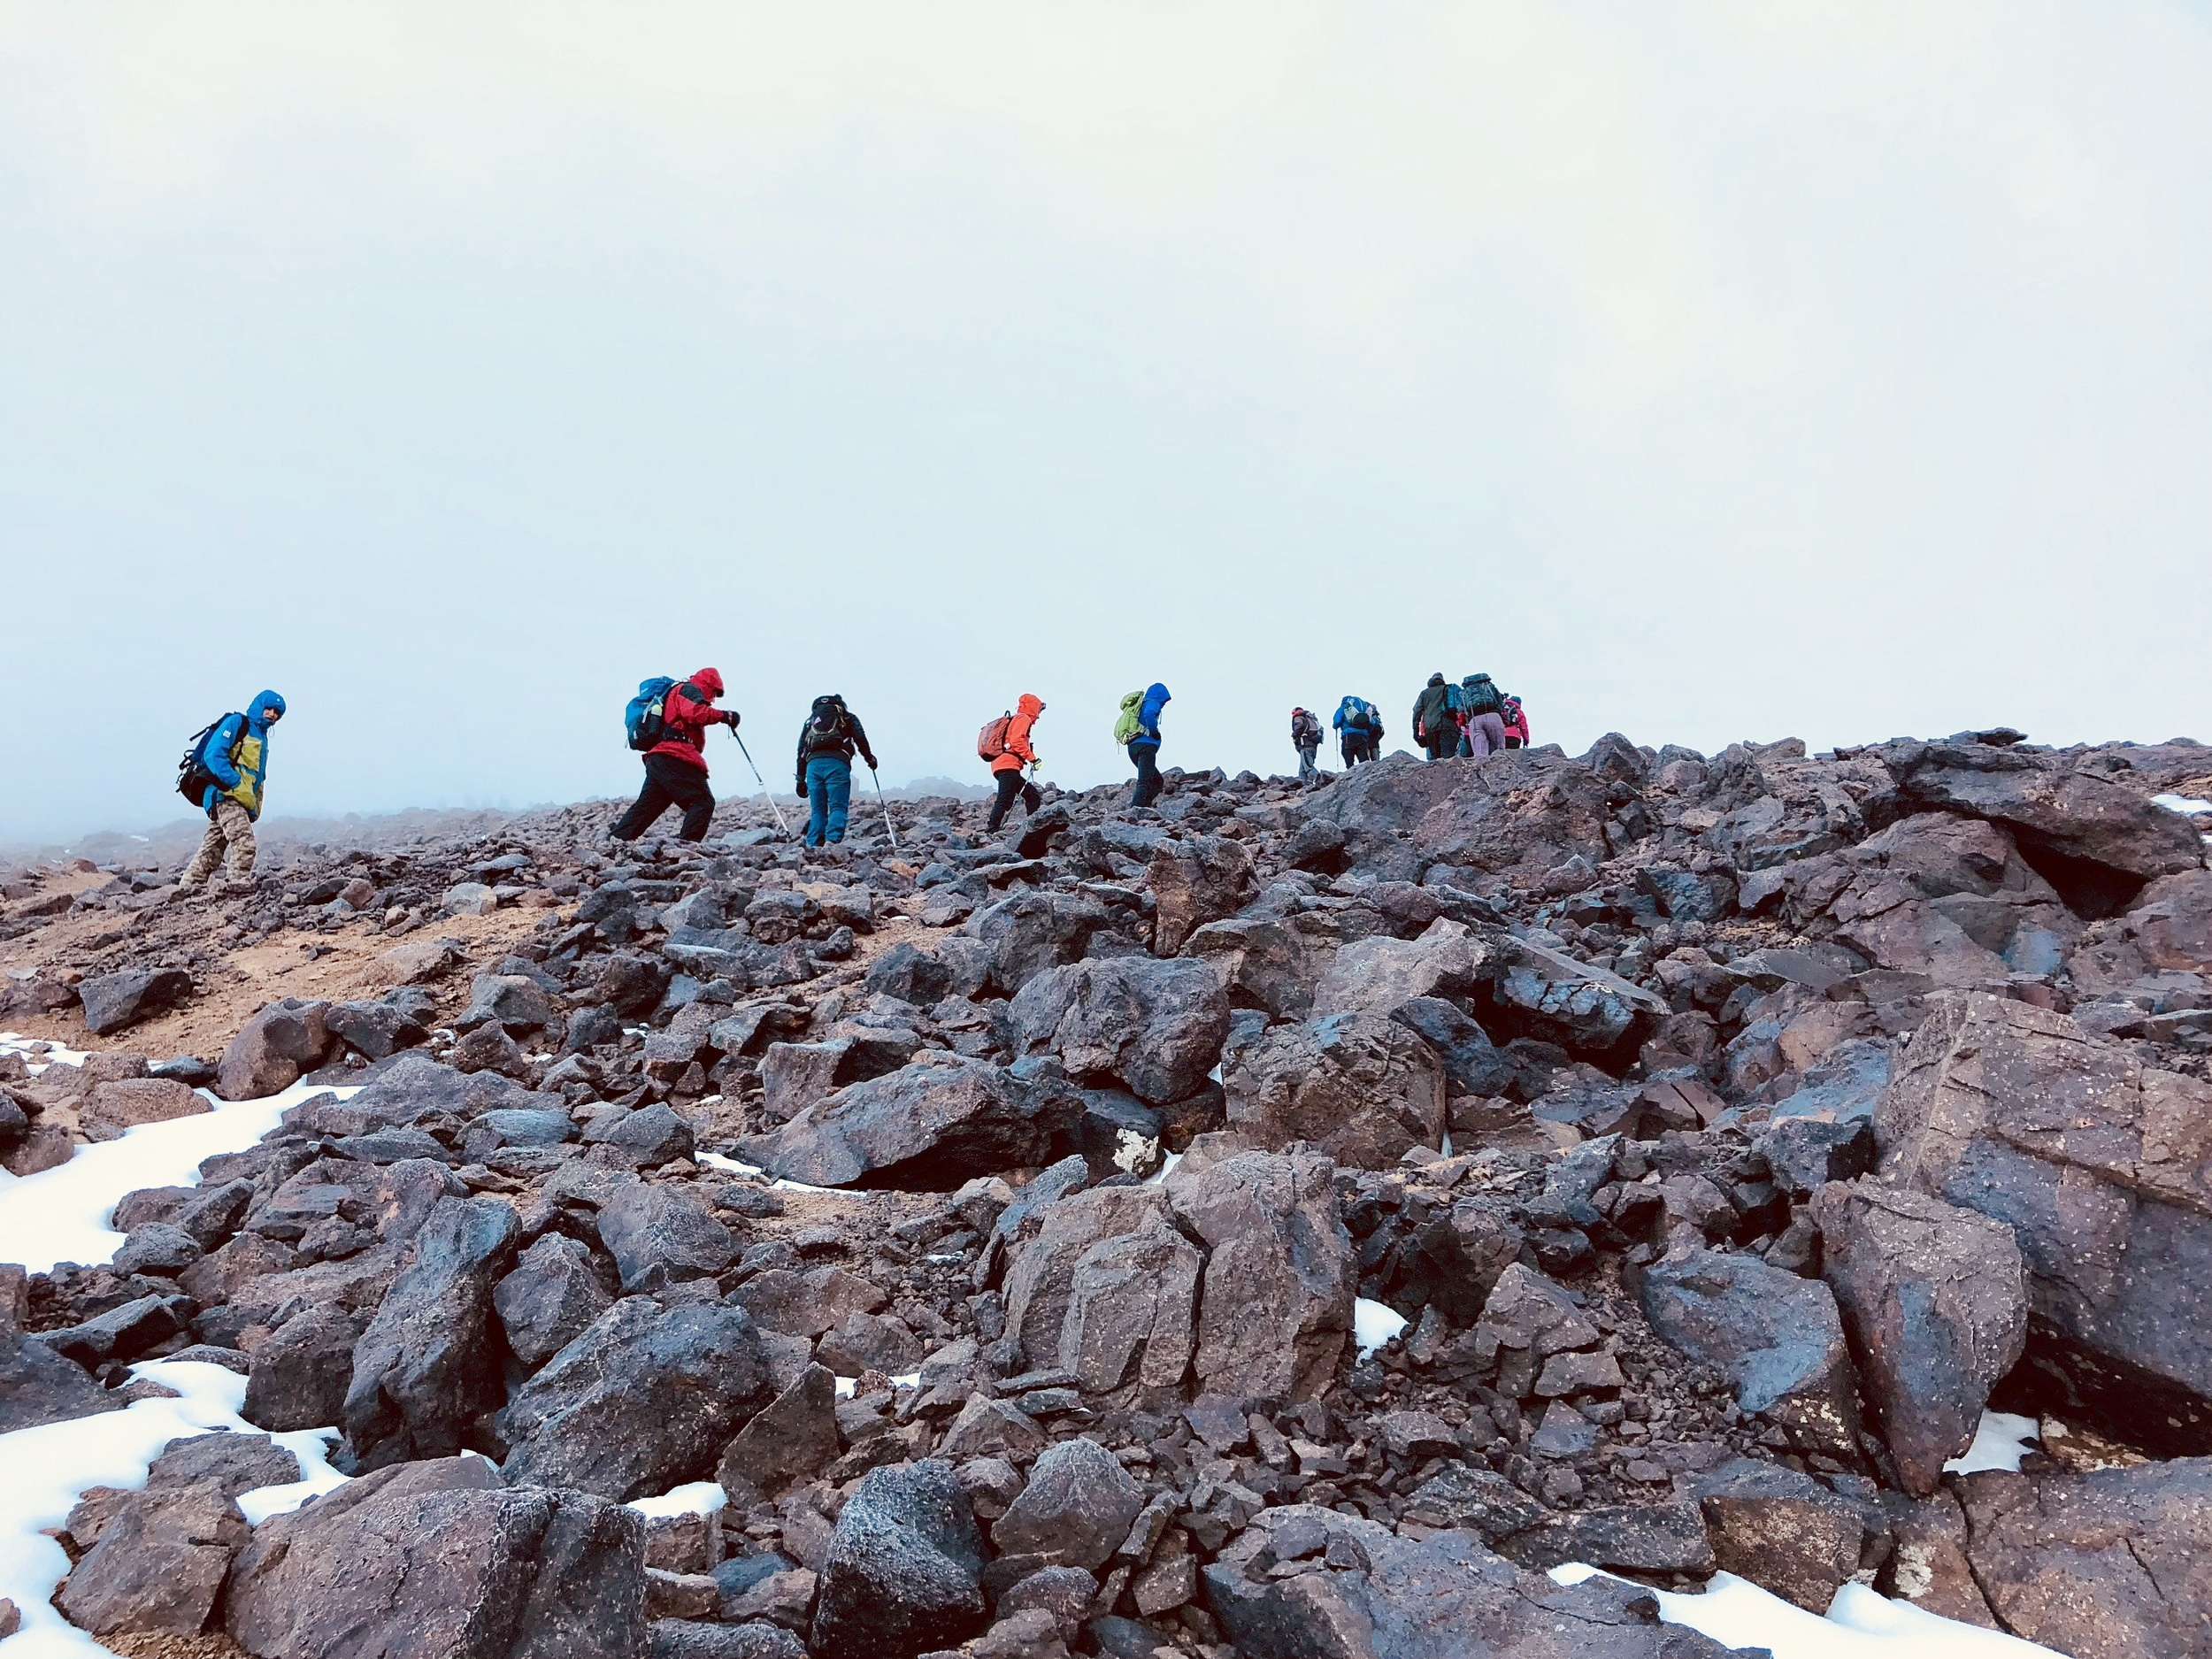 Heading up Mount Toubkal in good company